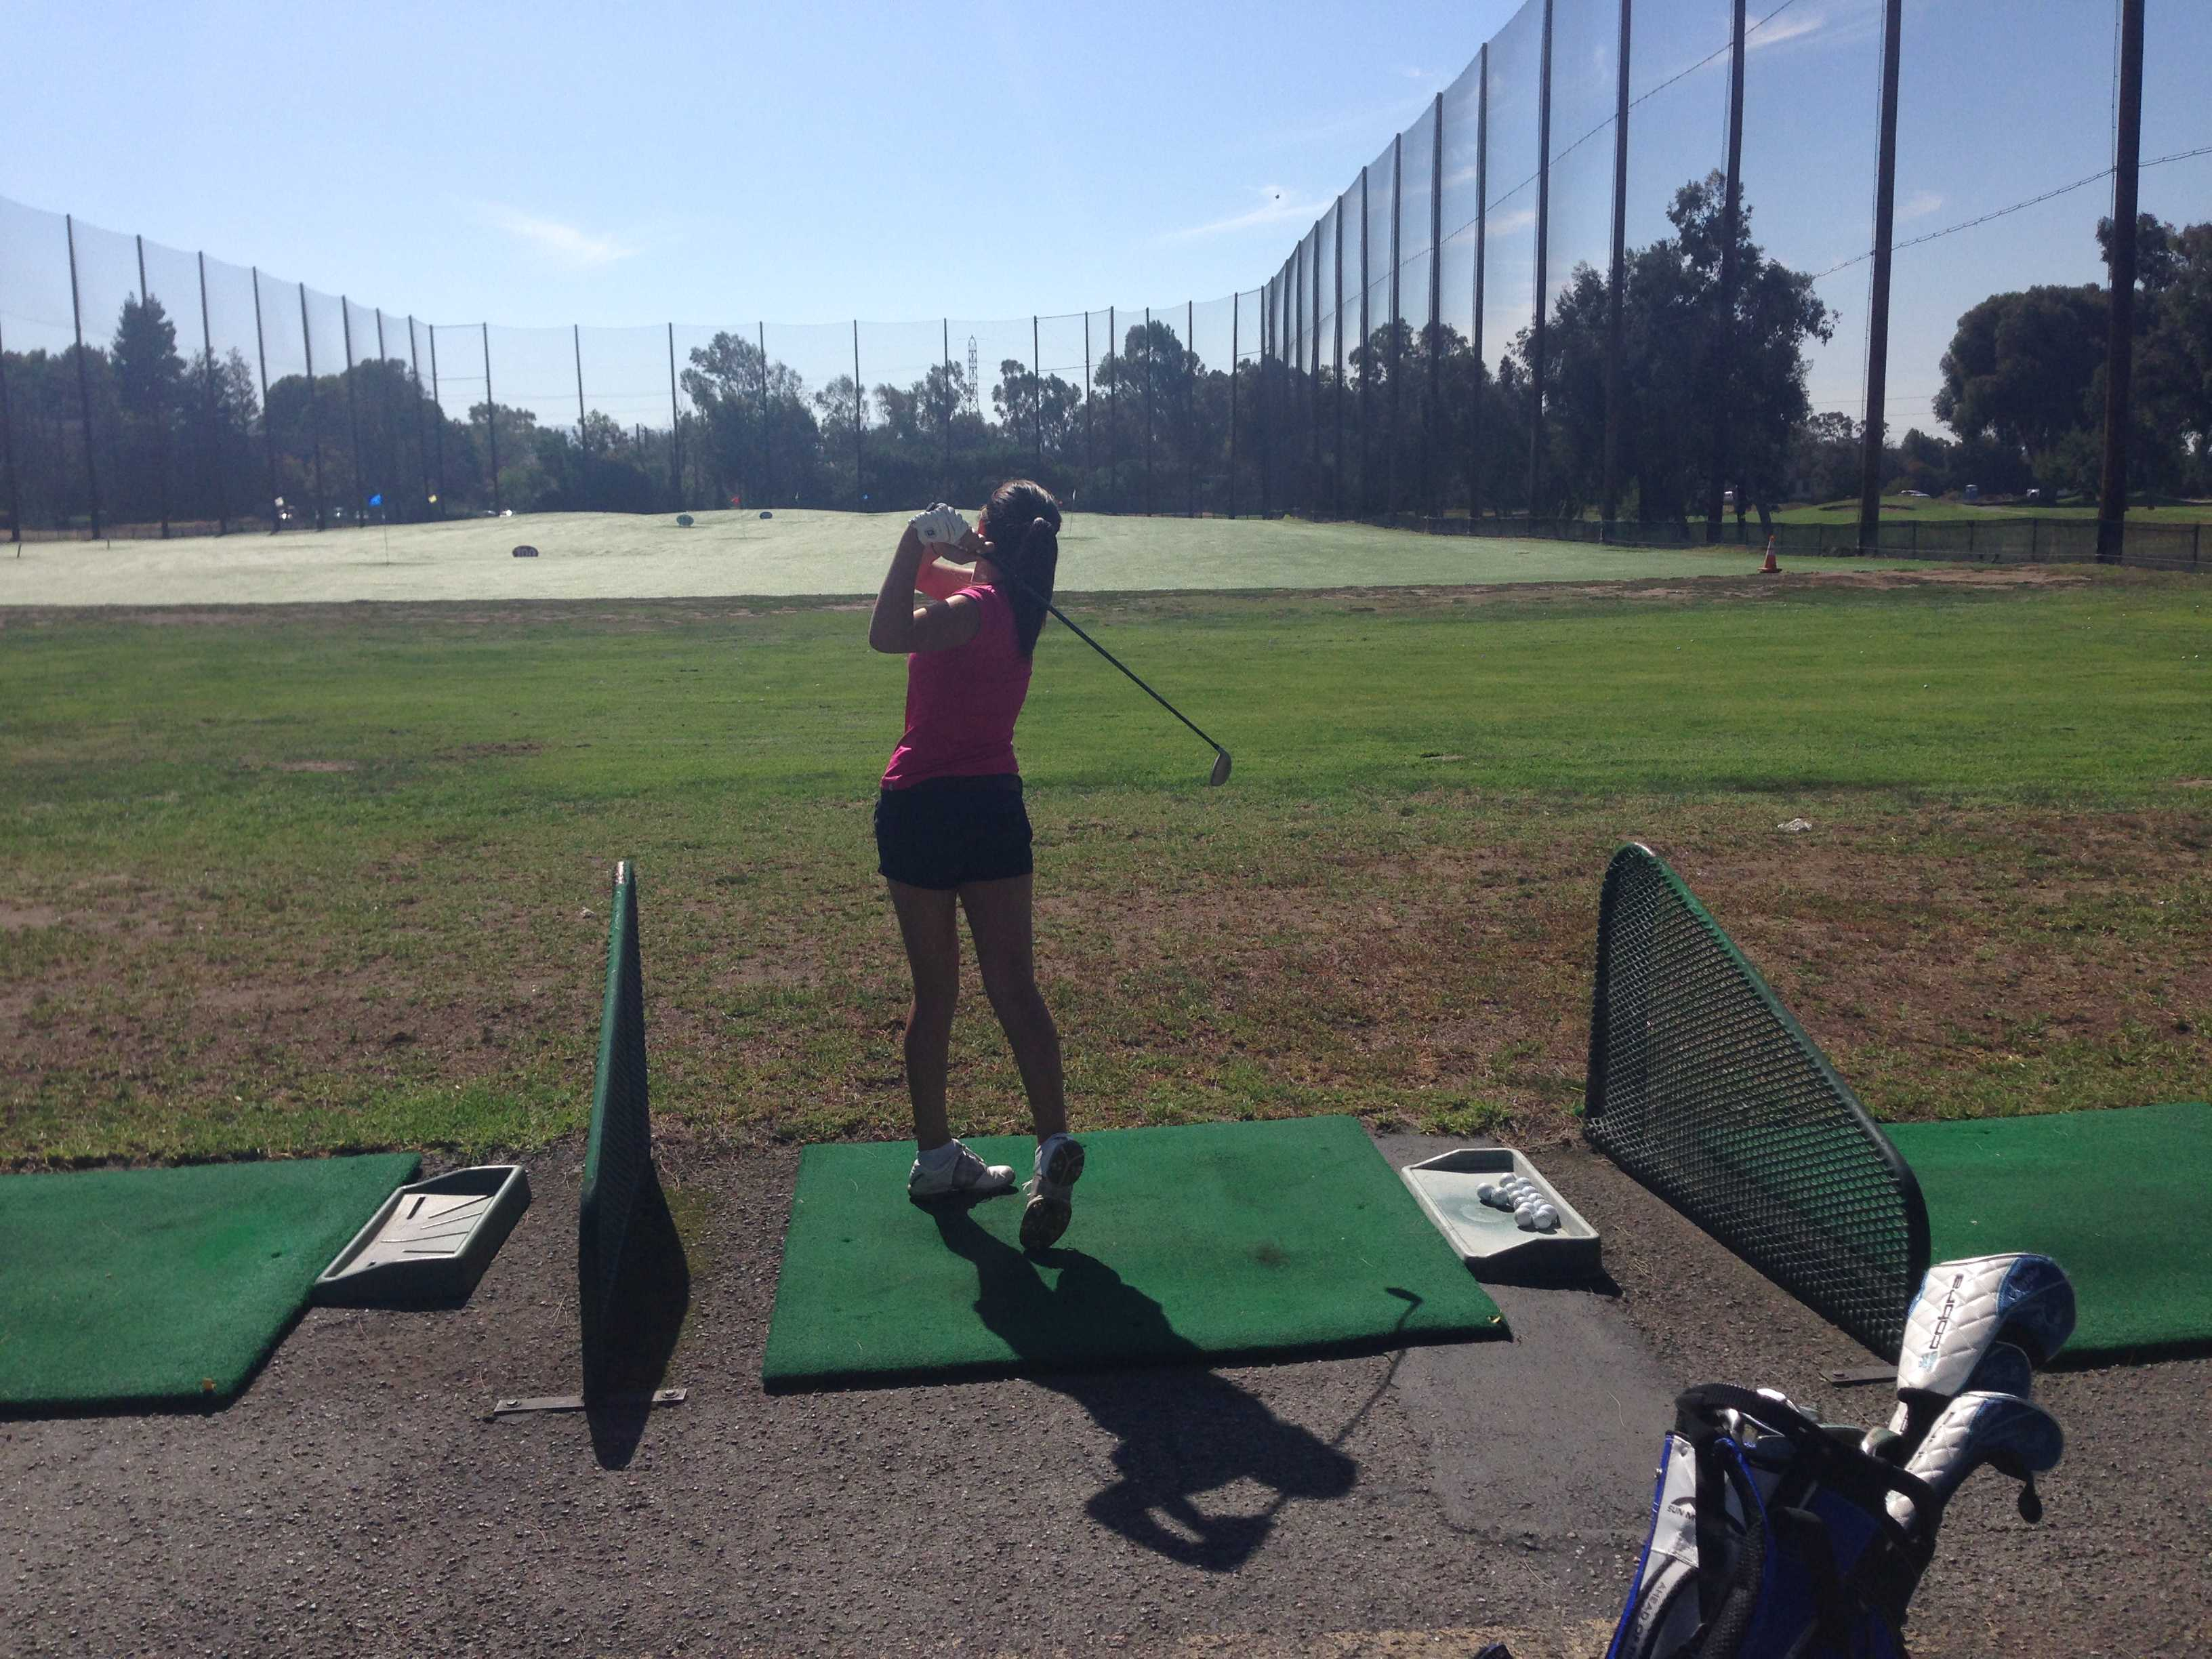 Senior Olivia Johnson takes a swing during practice at the Palo Alto Municipal golf course. Photo by Claire Krugler.